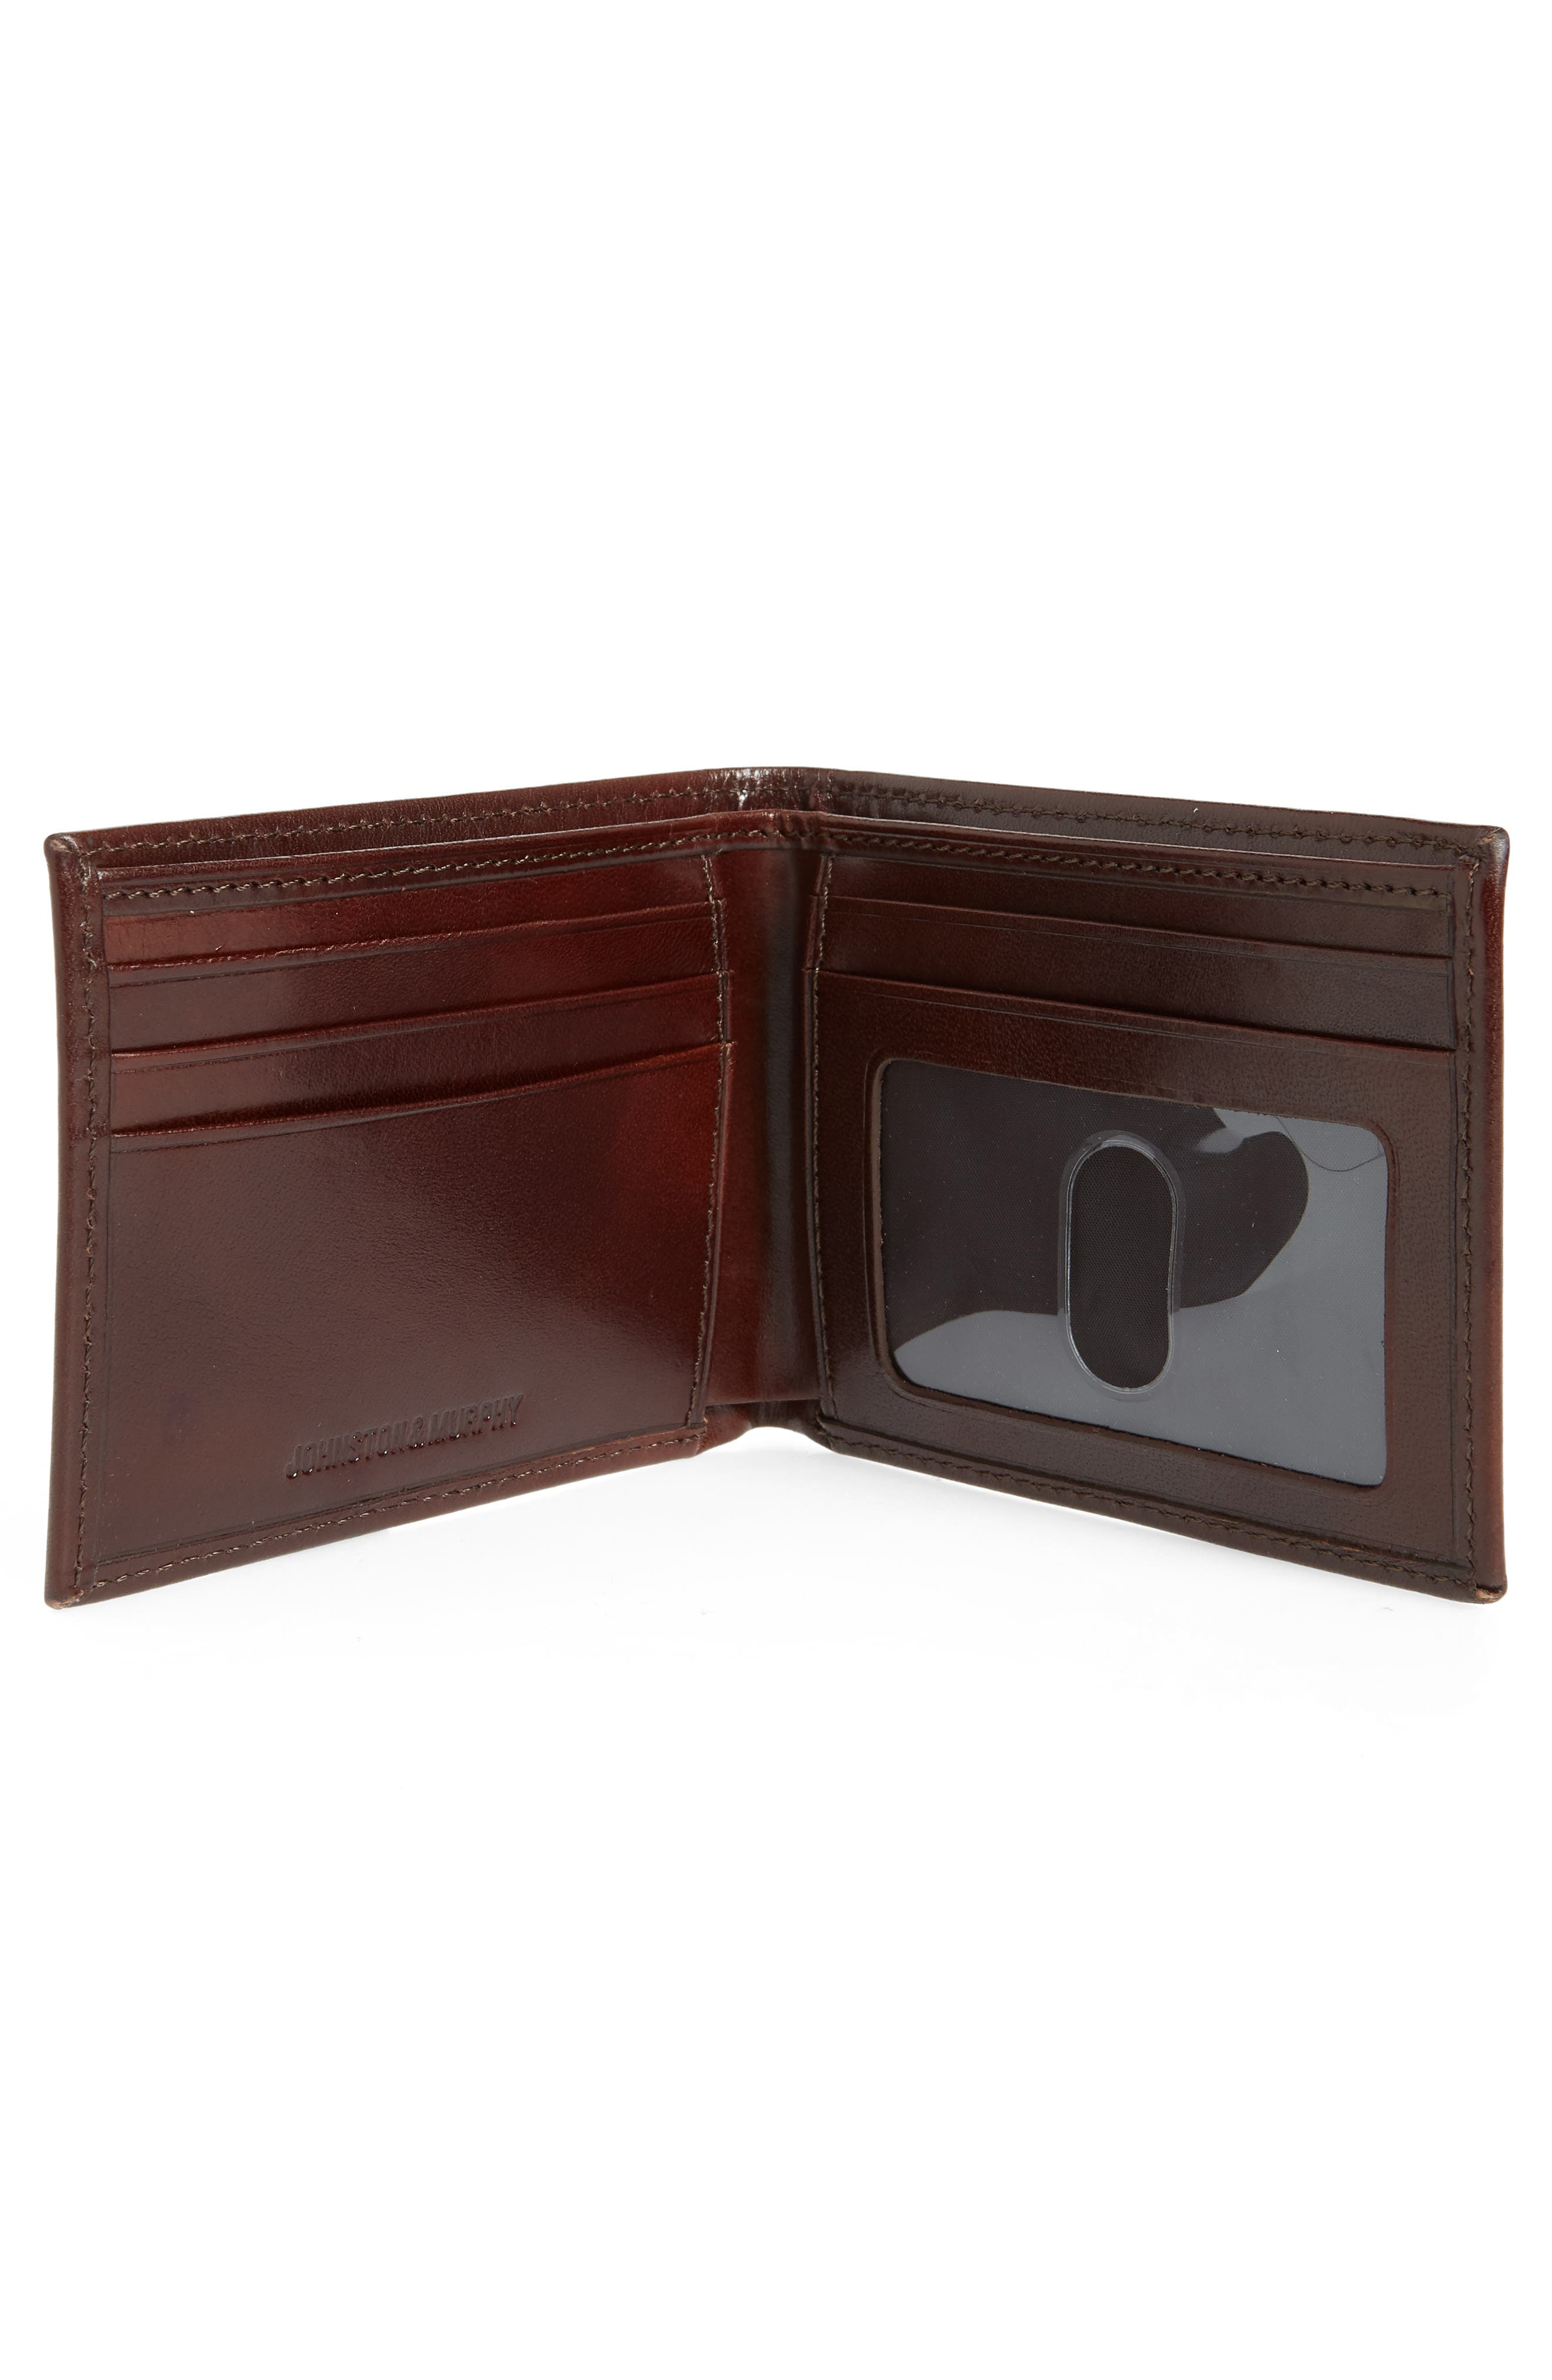 Slimfold Leather Wallet,                             Alternate thumbnail 2, color,                             200